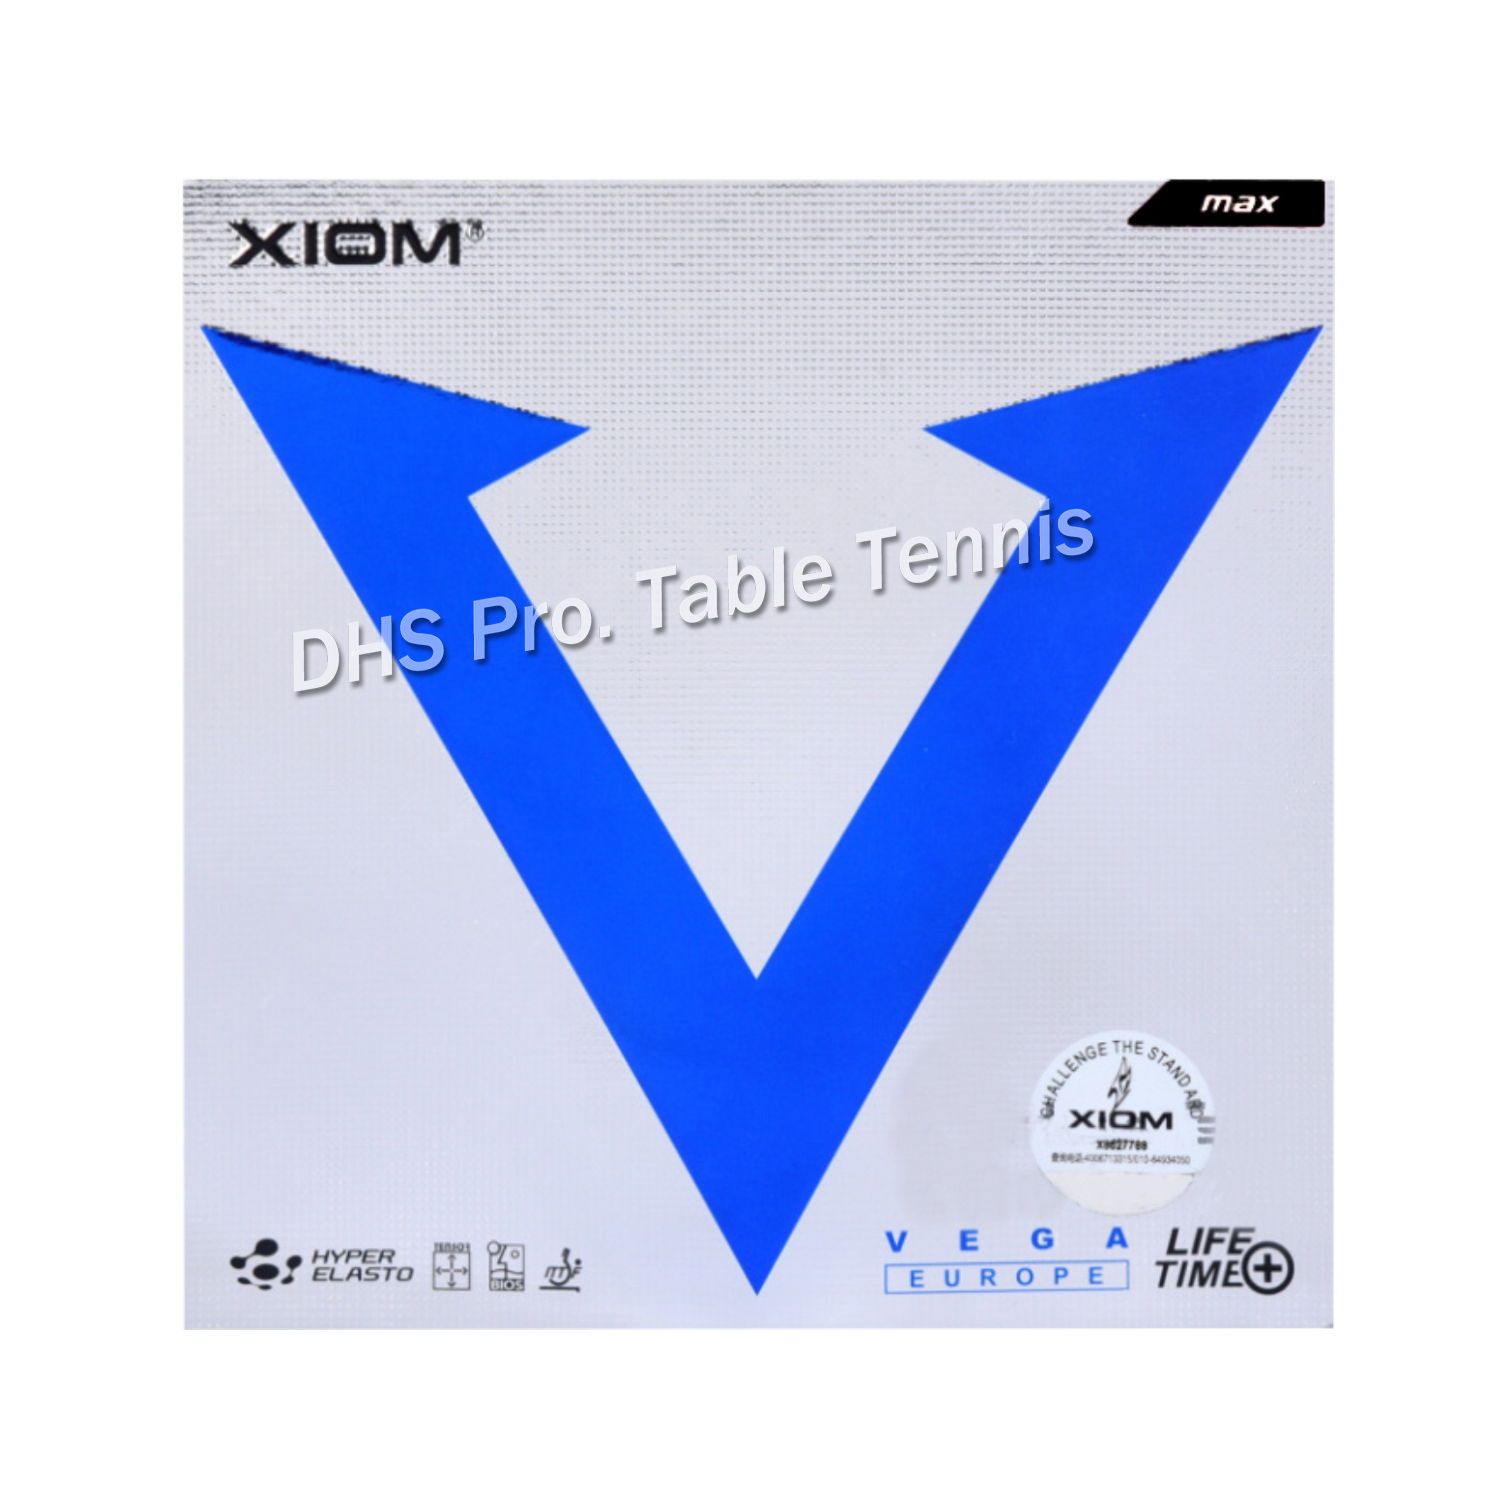 XIOM Original VEGA Europe  Table Tennis Rubber Ping Pong Sponge Tenis De Mesa